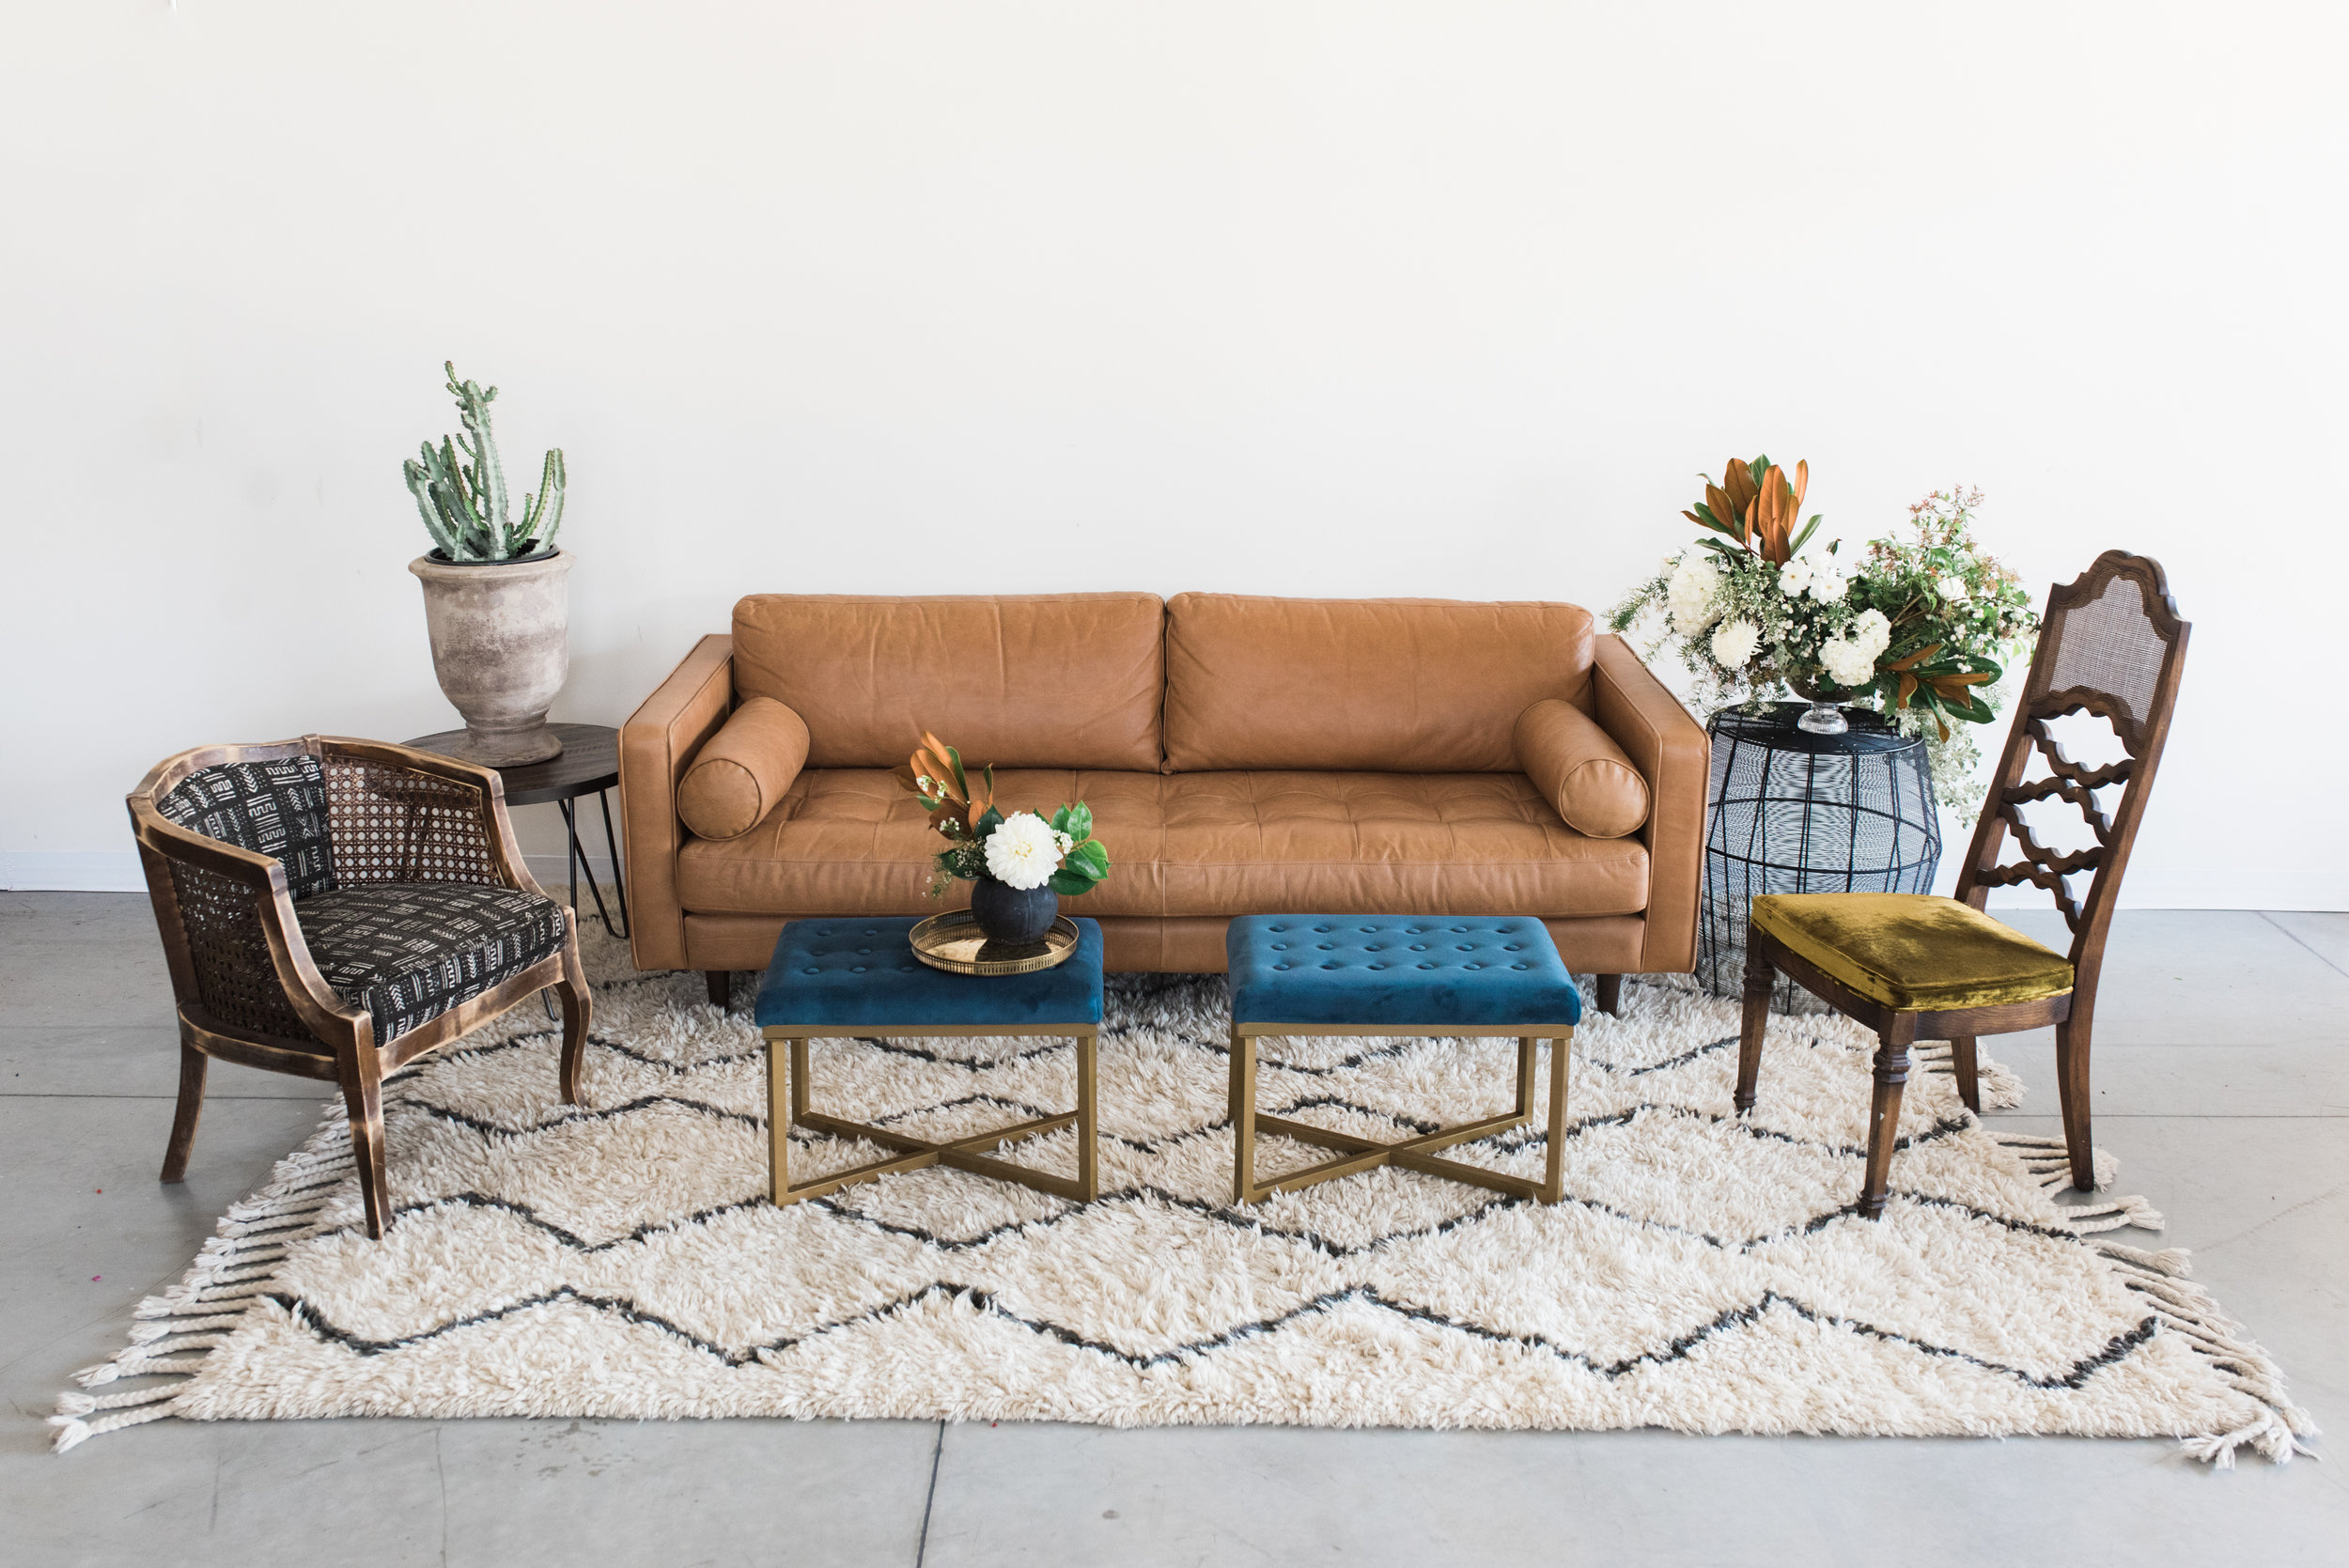 Furniture with pillows, rugs and poufs: $770  Furniture only: $570  ***Potted plants, vases of flowers, bowls of fruit and books are not included.